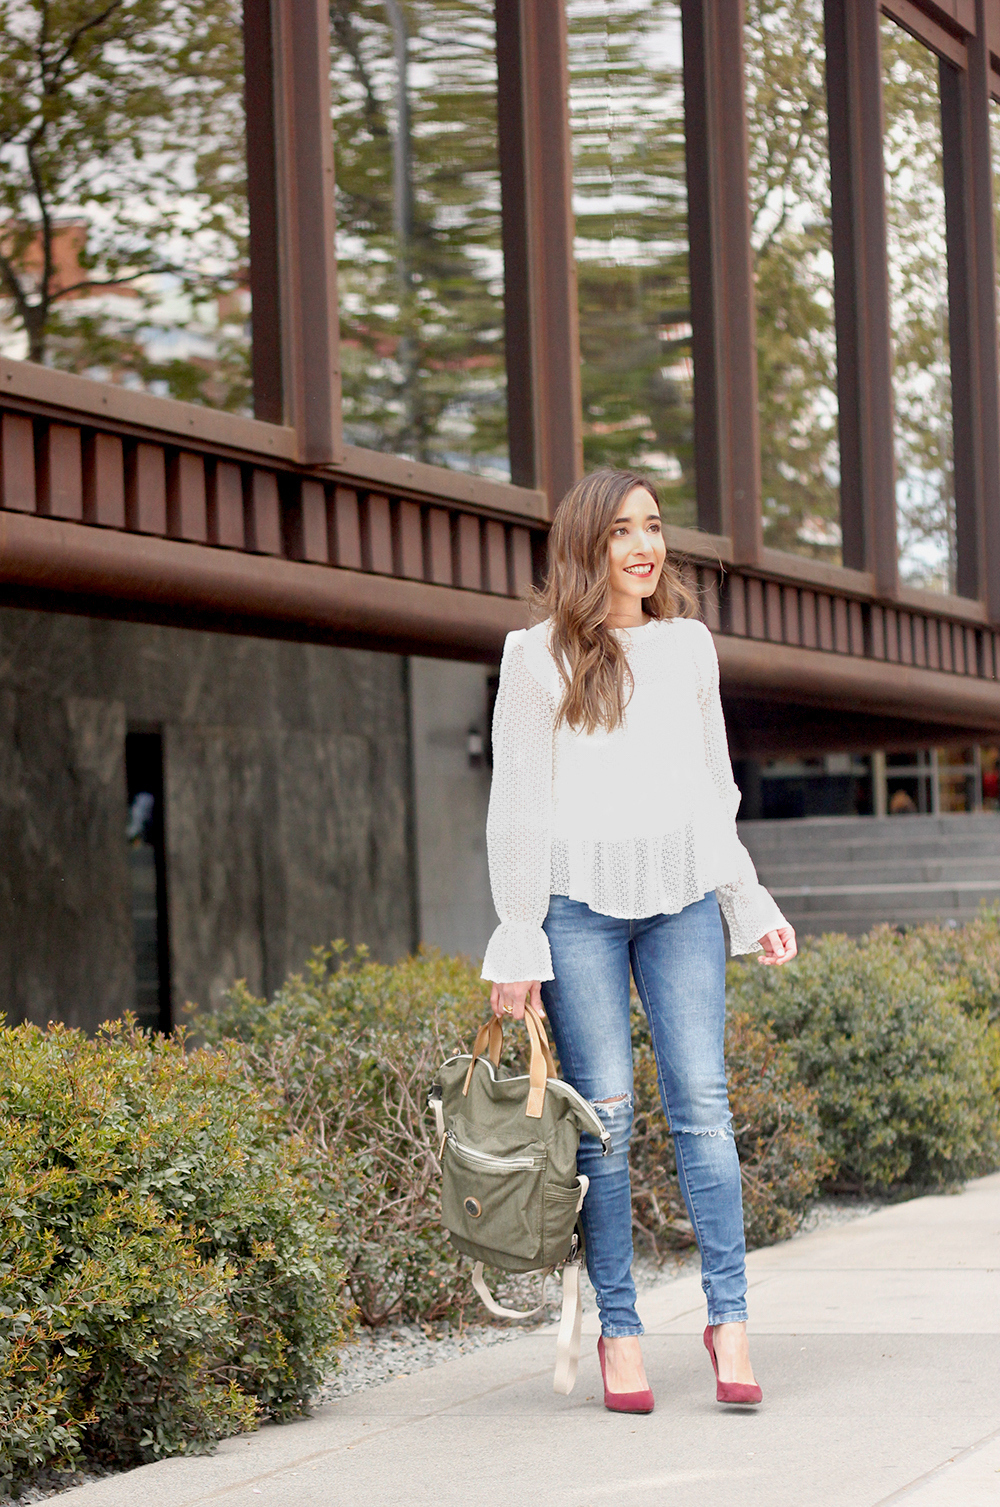 kipling backpack transformation collection khaki white lace blouse casual street style casual outfit 20193